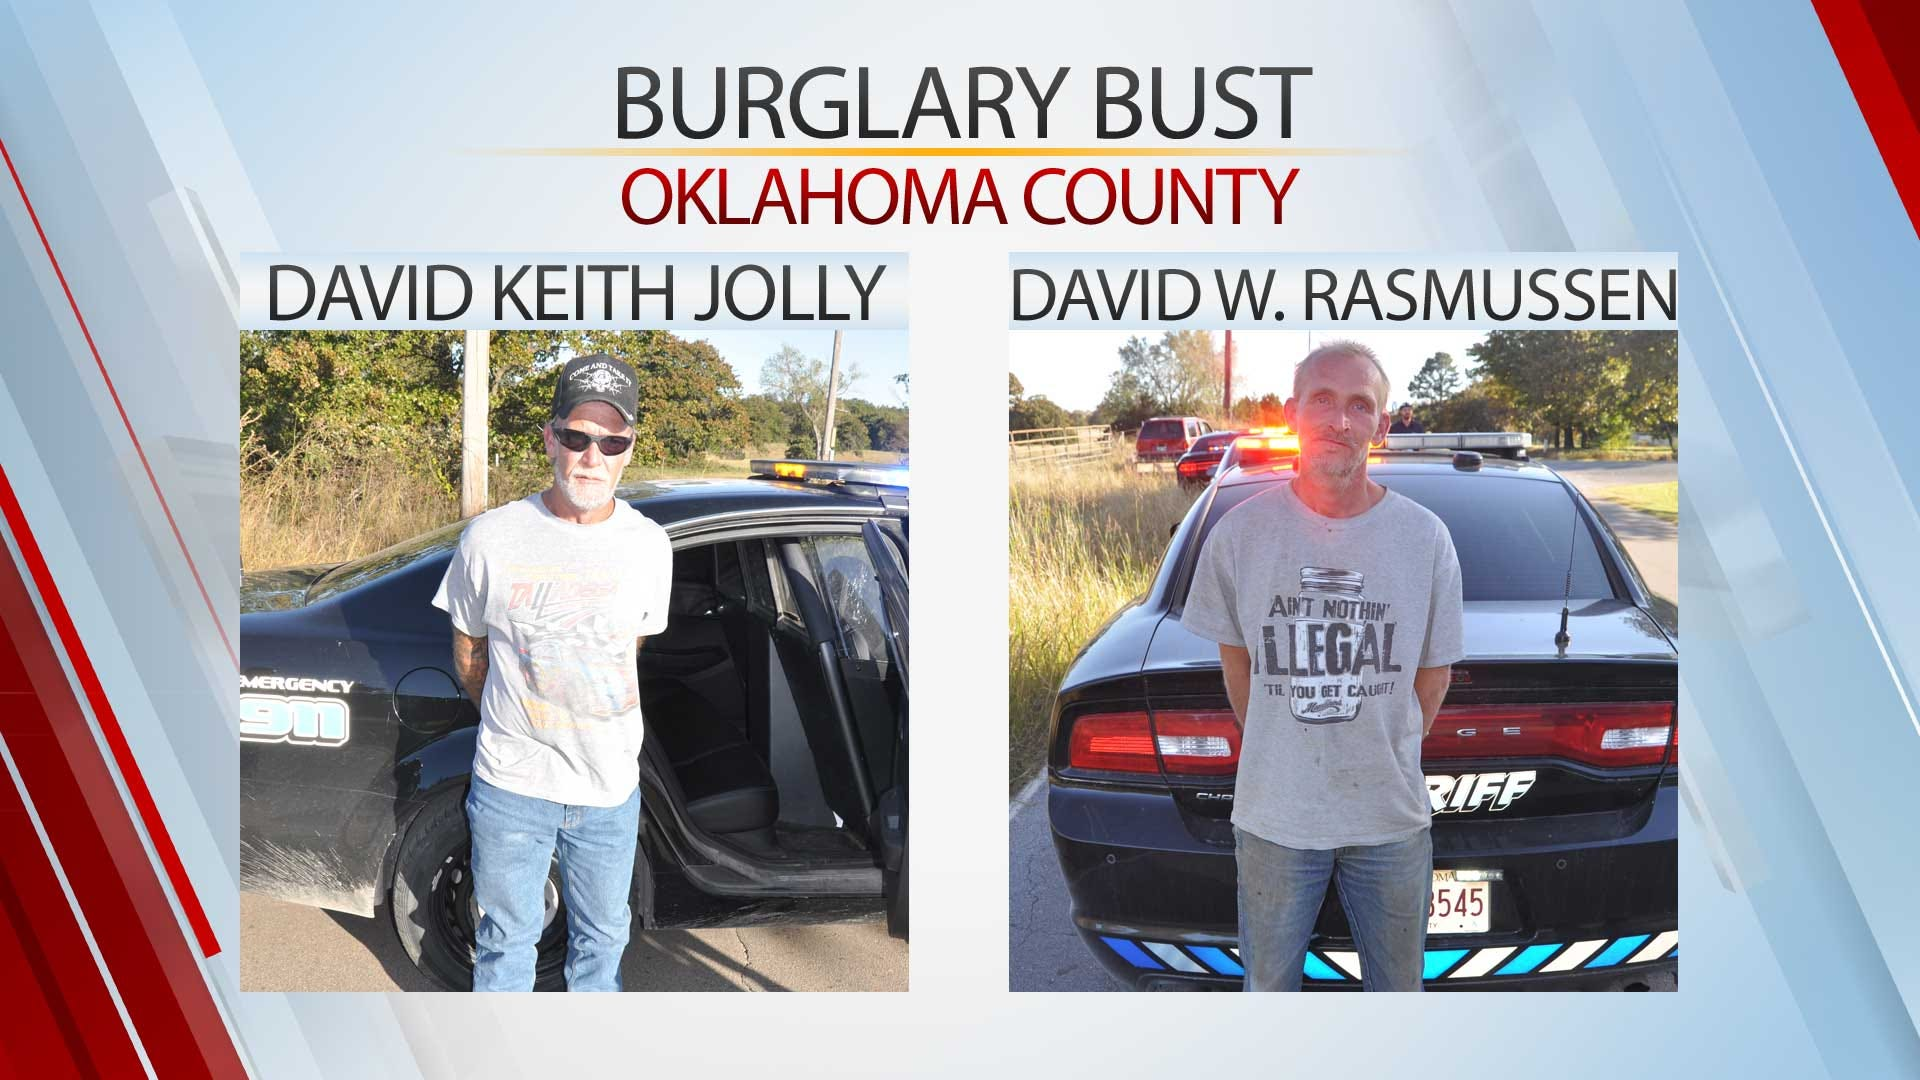 2 Arrested In Oklahoma County Burglary Bust